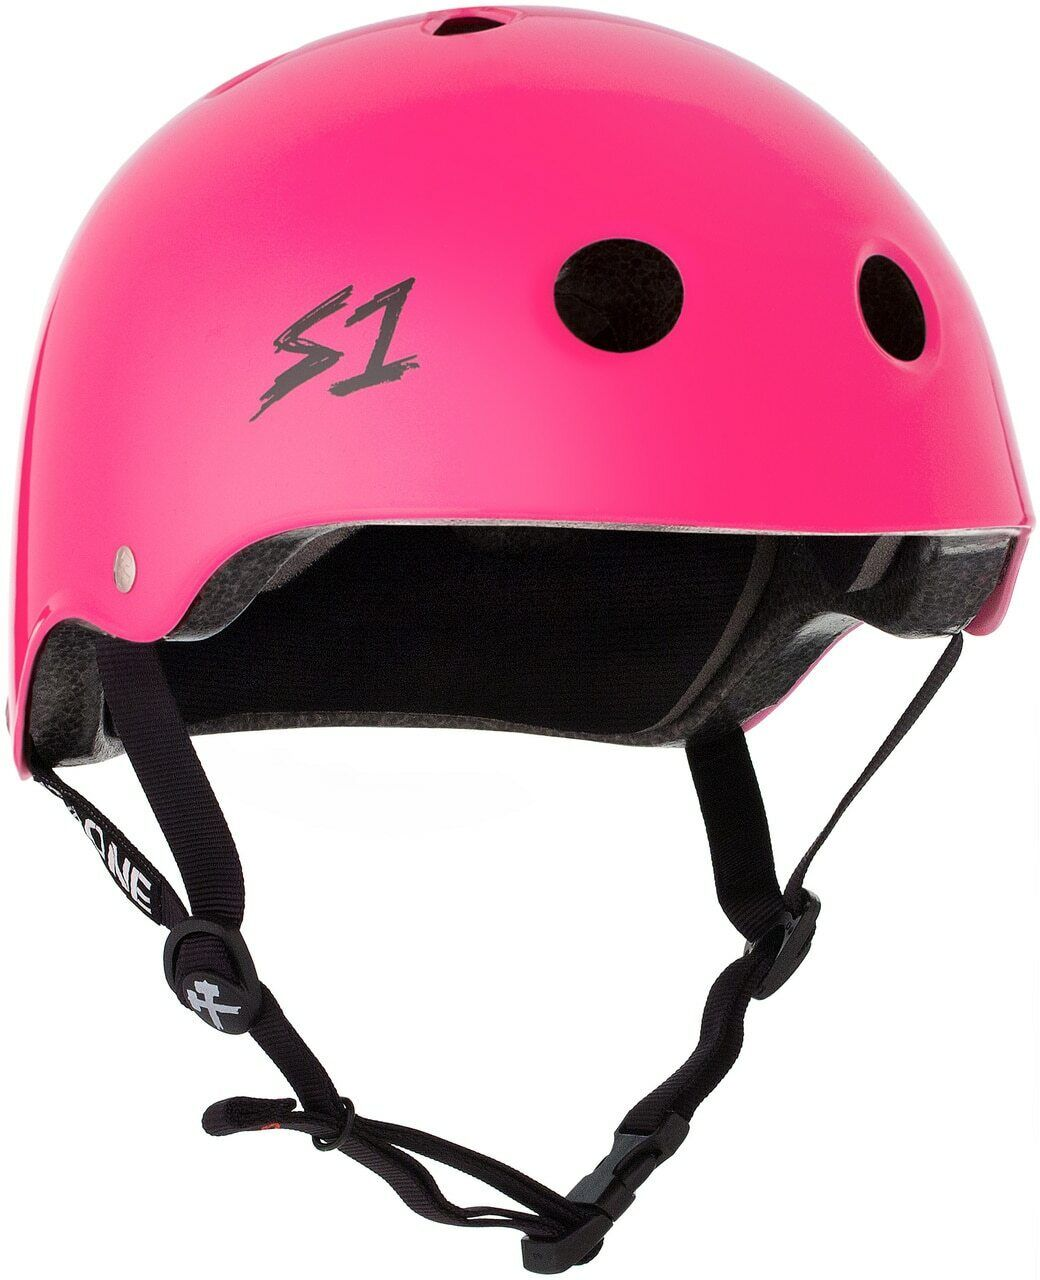 S1 Lifer Helmet - Hot Pink  Gloss  with 60% off discount